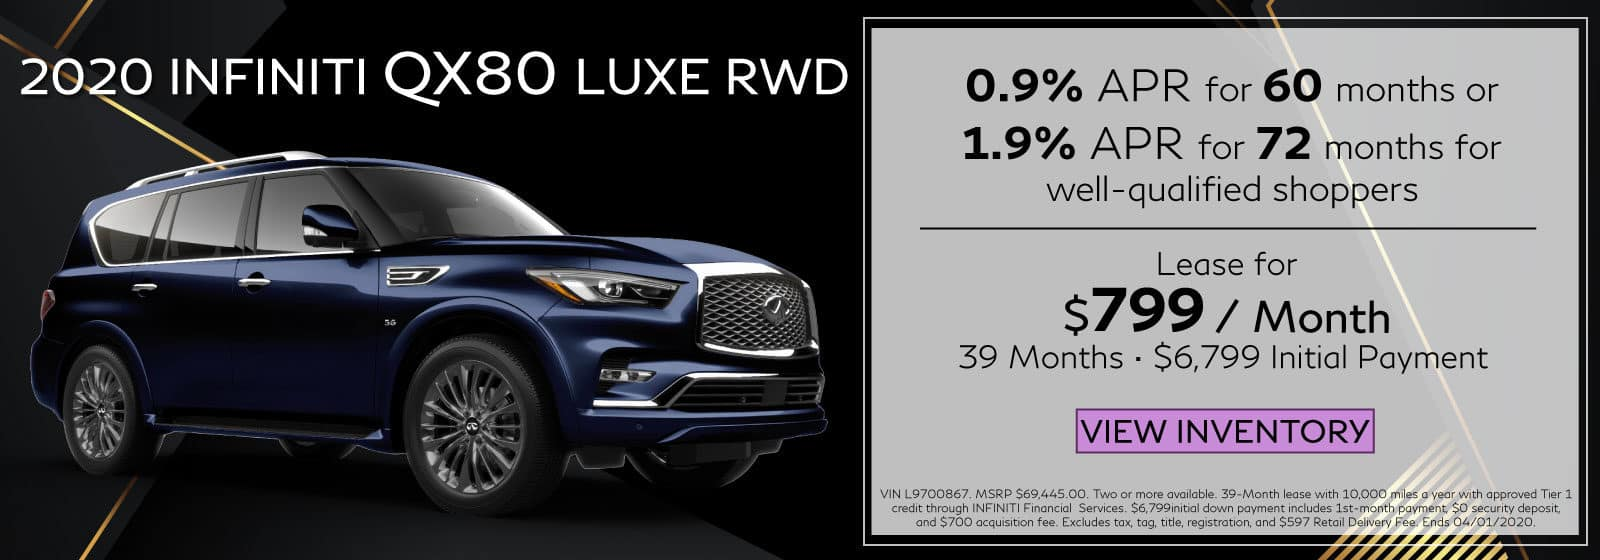 2020 QX80 LUXE RWD. Lease for $799 a month for 39 months. $6,799 initial payment. OR 0.9% APR for 60 months OR 1.9% APR for 72 months. Blue QX80 on black abstract background. View Inventory button.